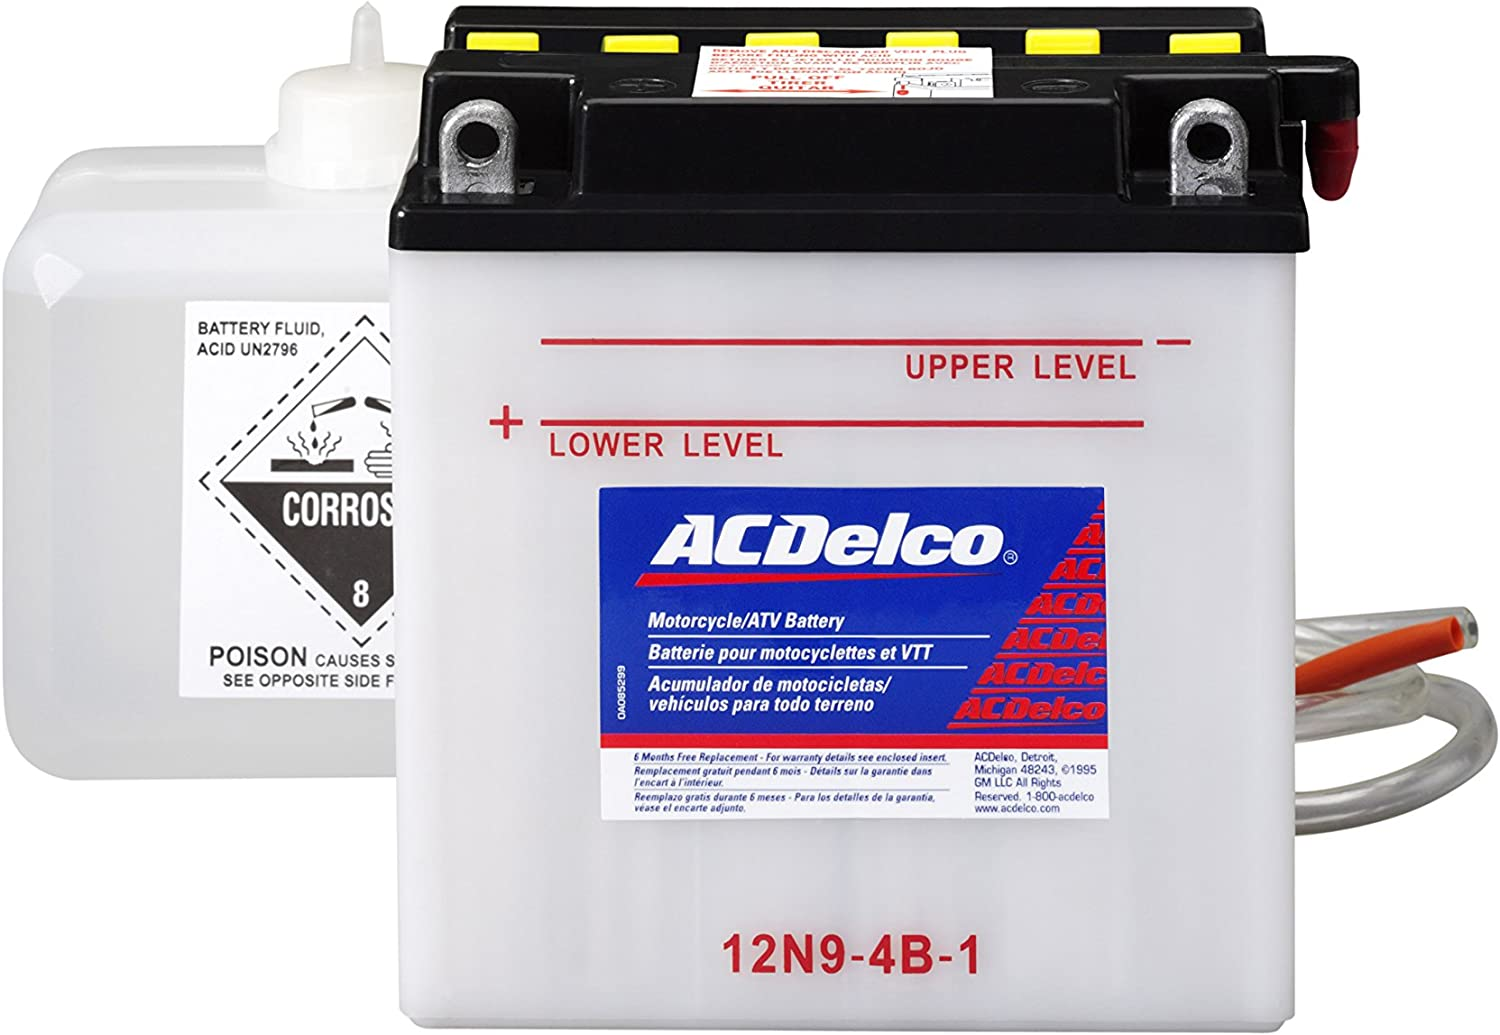 ACDelco AB12N94B1 Specialty Conventional Powersports JIS 12N94B1 Battery